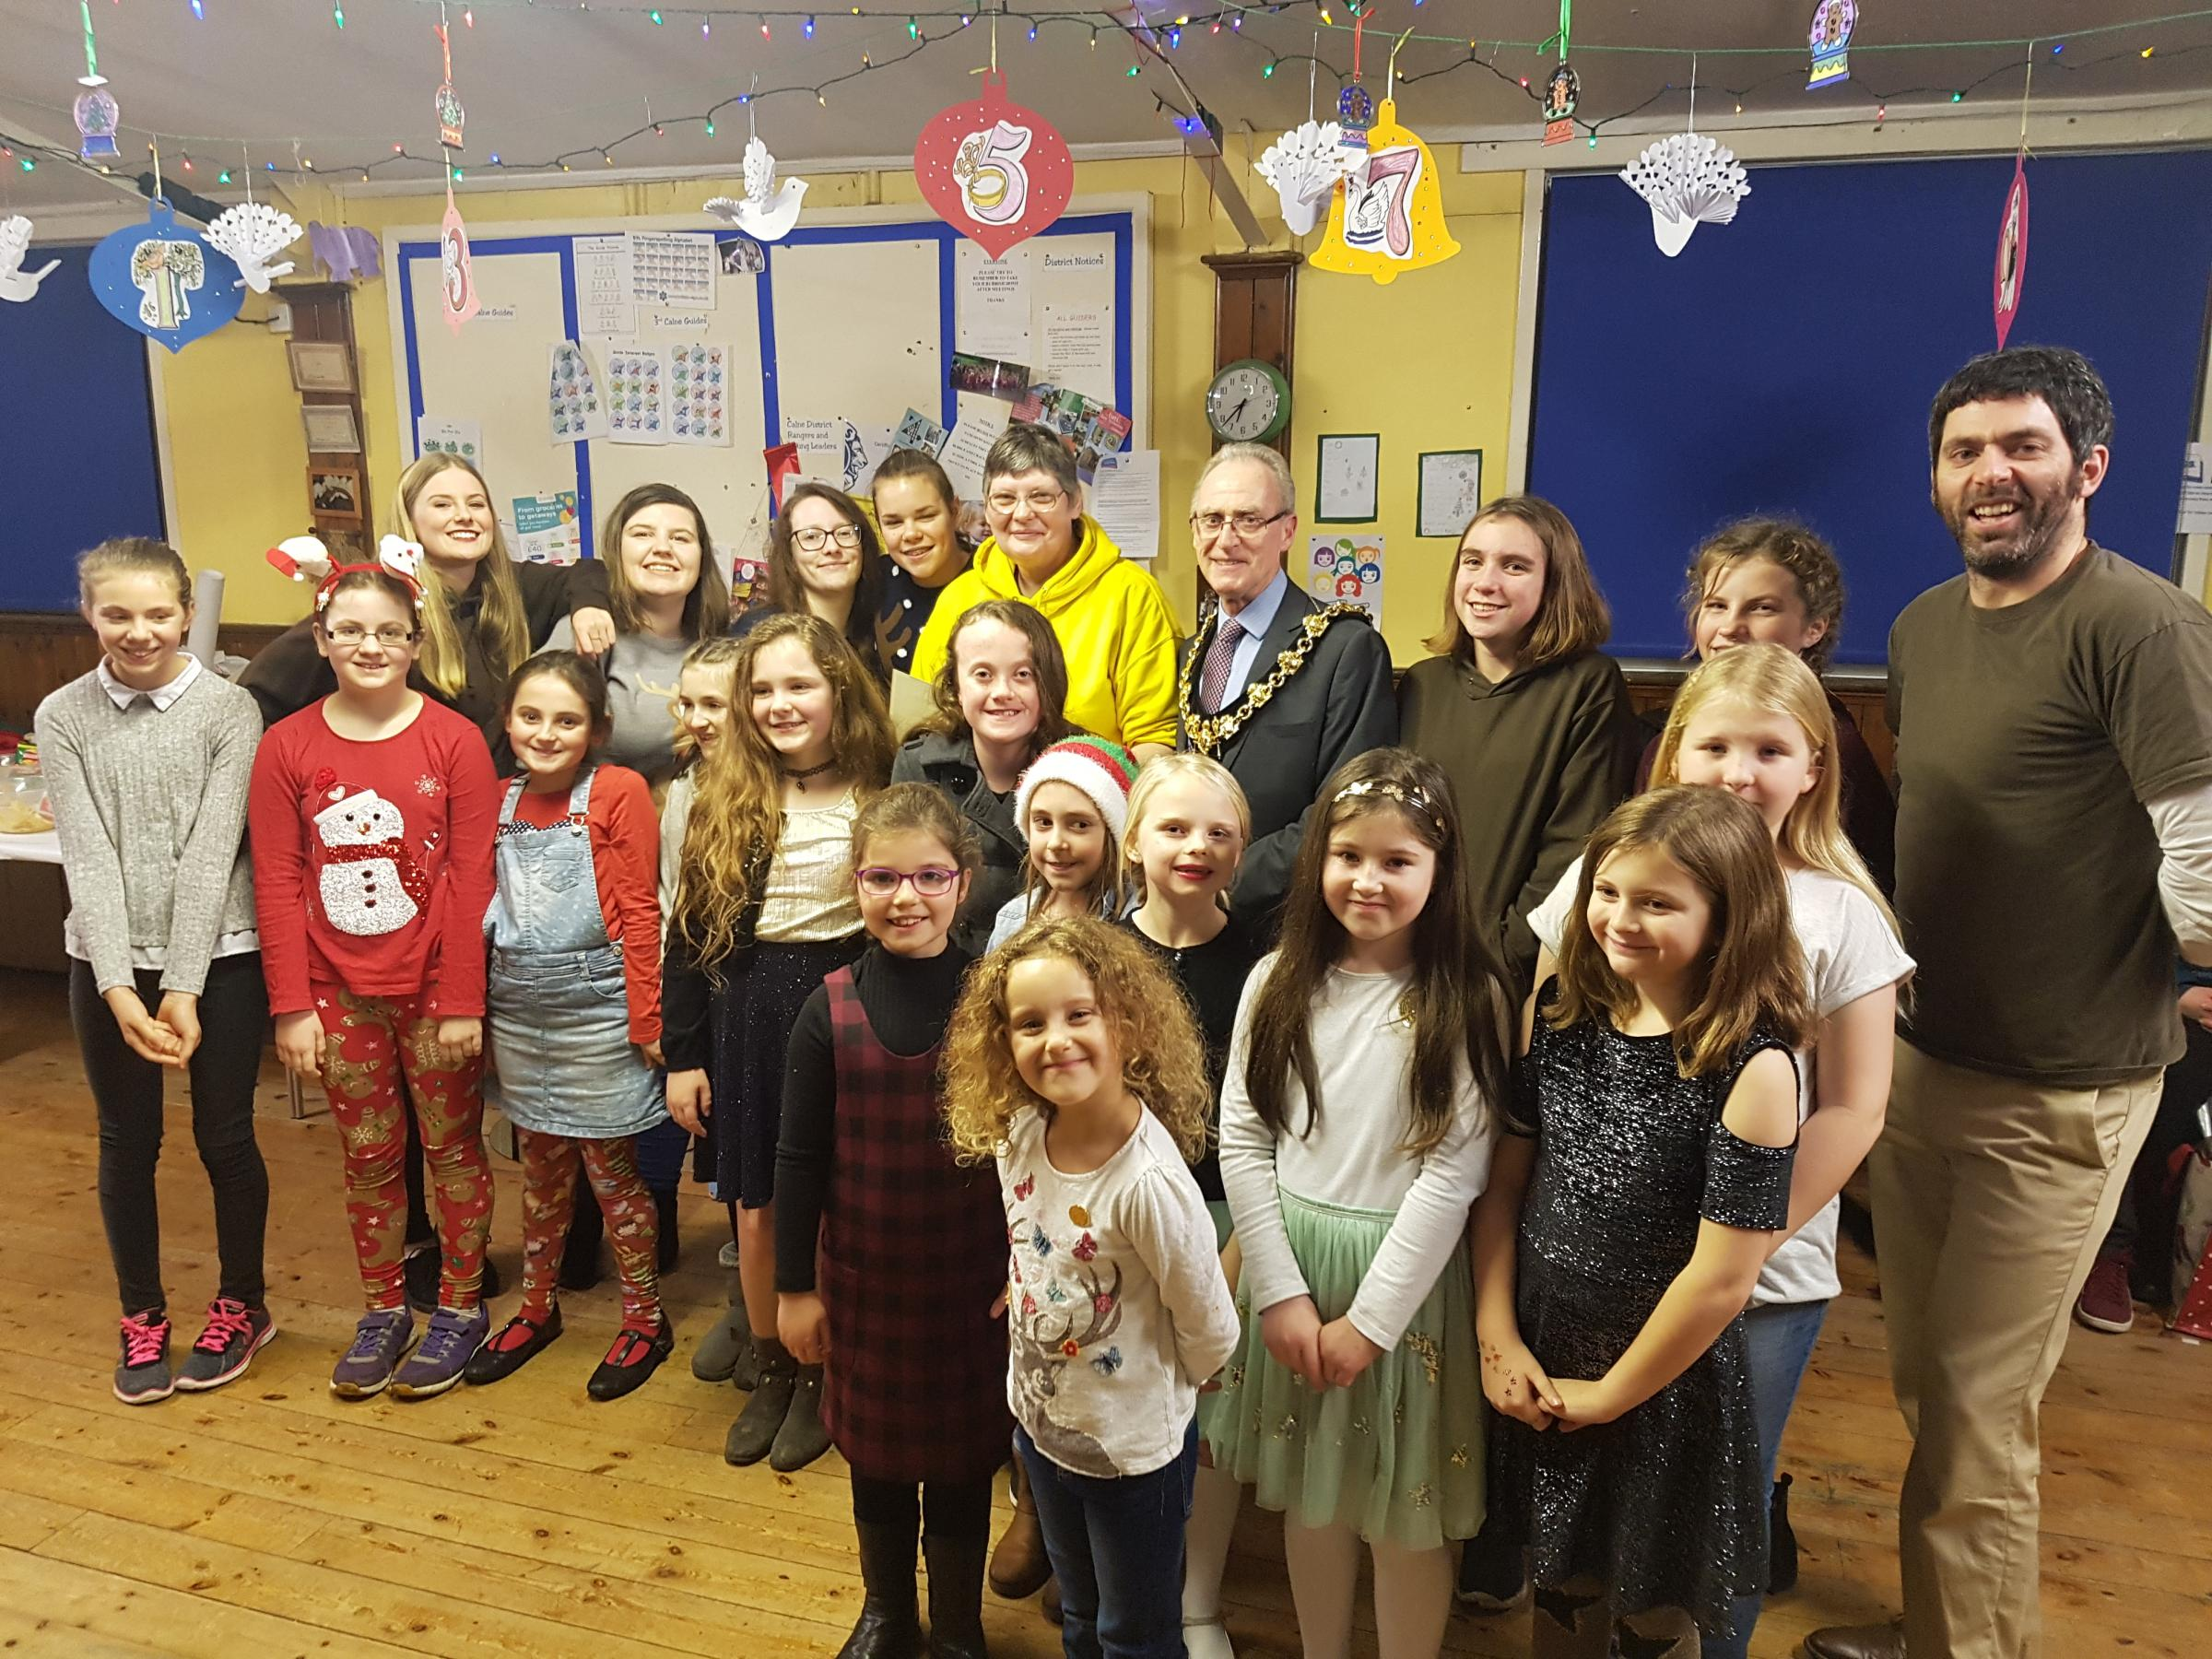 Calne 1st Brownies Norma Hamilton (Centre) and Mayor Cllr Tony Trotman wth Brownies new and old at her last session